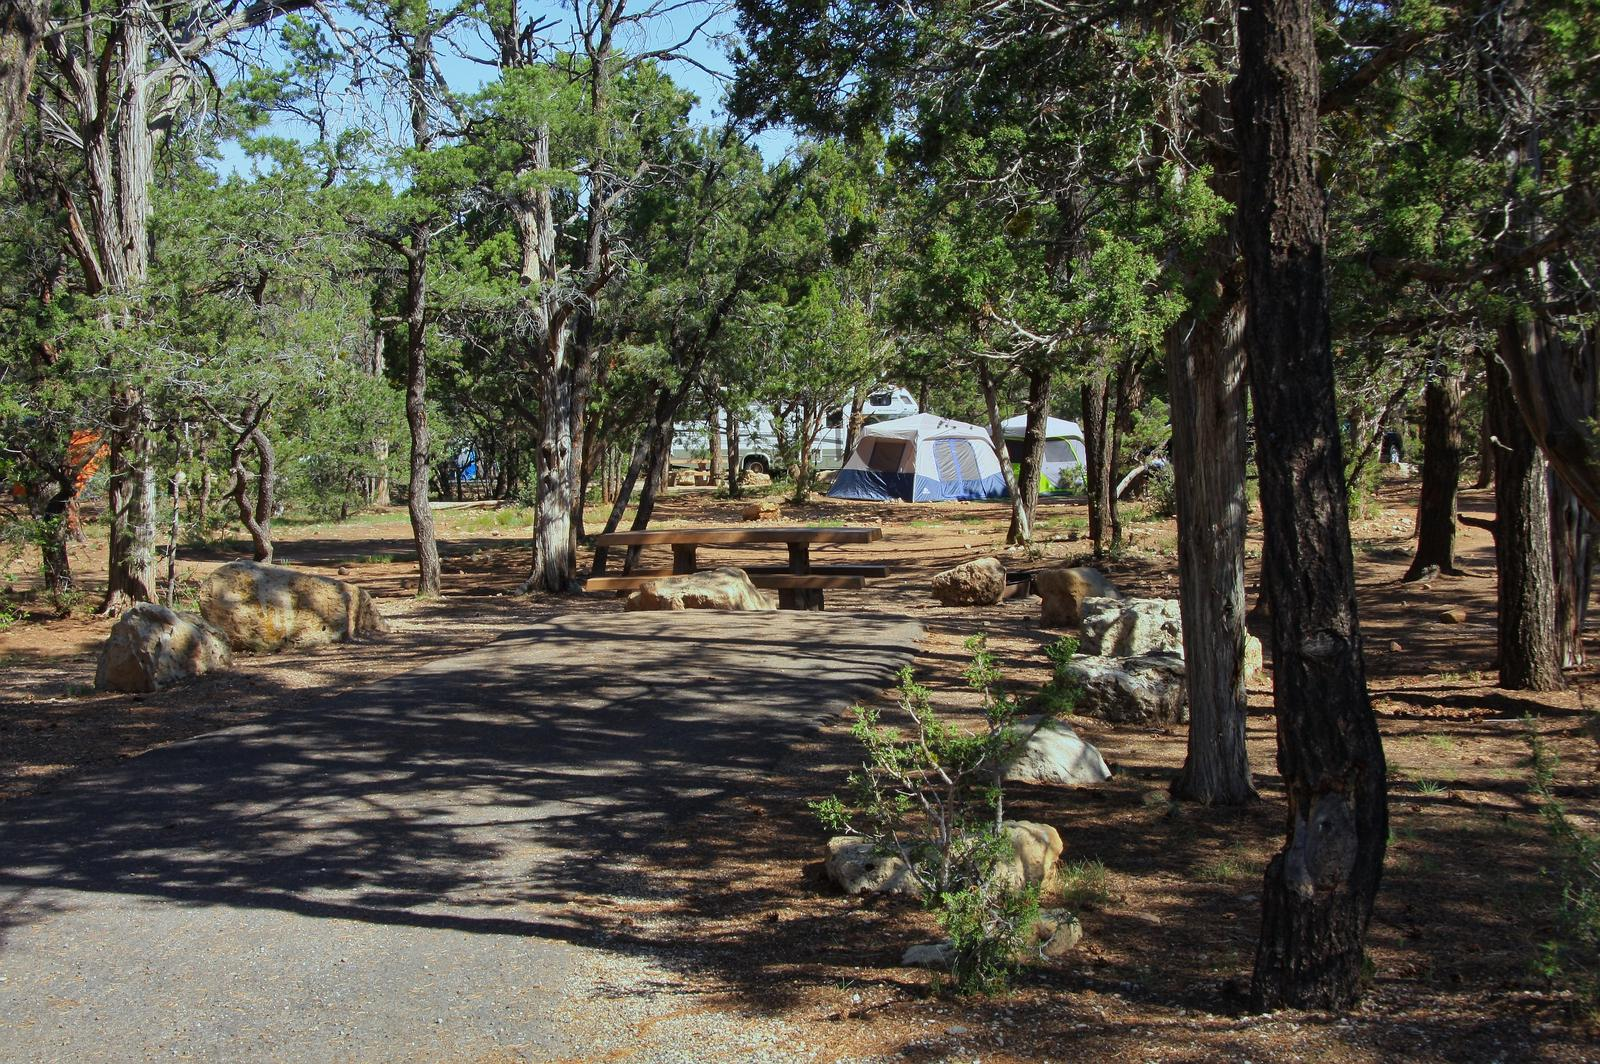 Picnic table, fire pit, and park spot, Mather CampgroundPicnic table, fire pit, and park spot for Oak Loop 238, Mather Campground